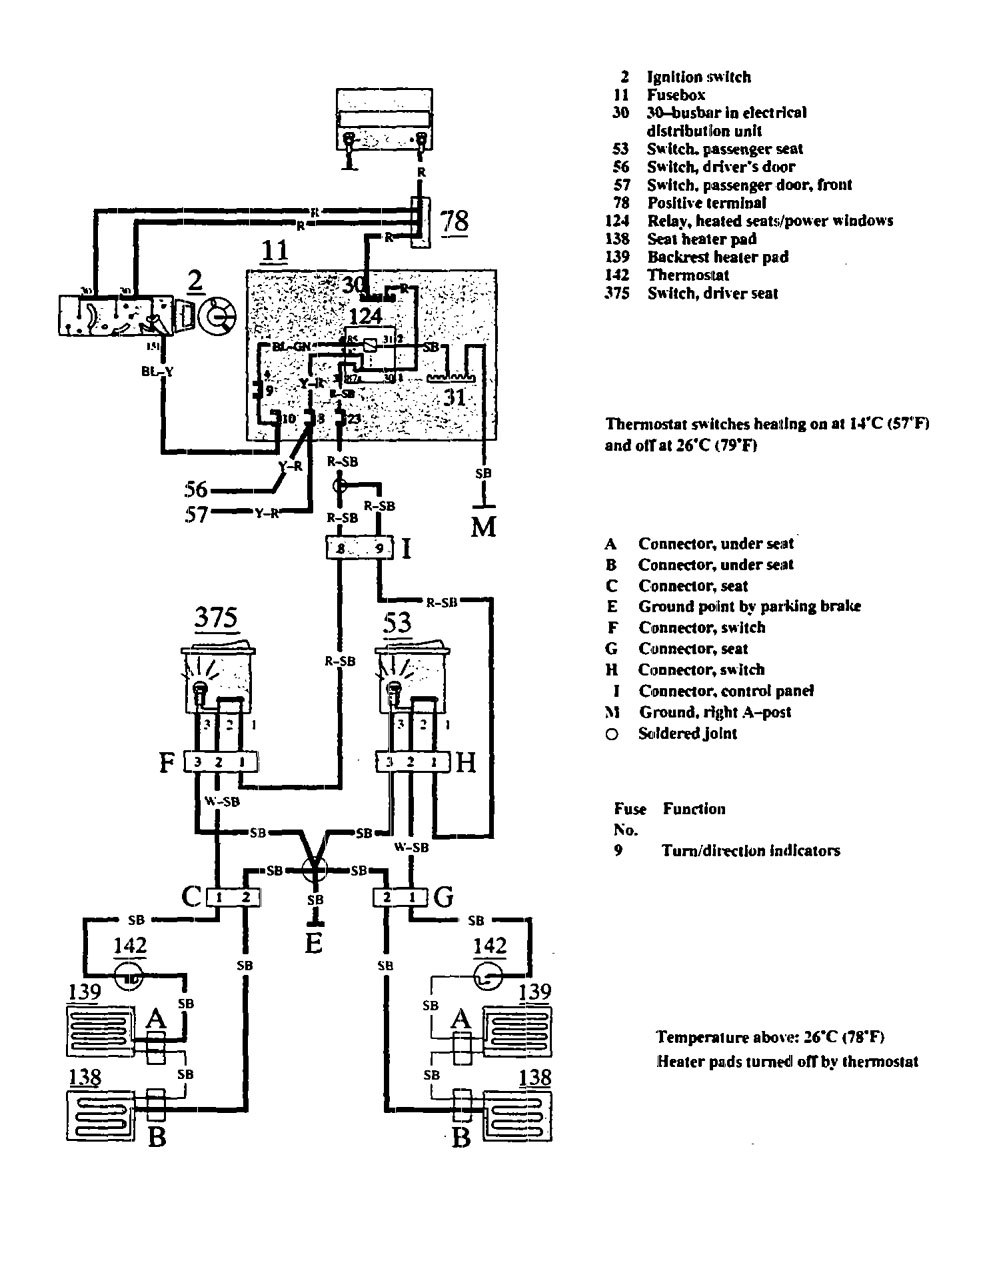 Volvo 940 1991 Wiring Diagrams Heated Seats Carknowledge 91 Alfa Romeo Spider Diagram Part 1